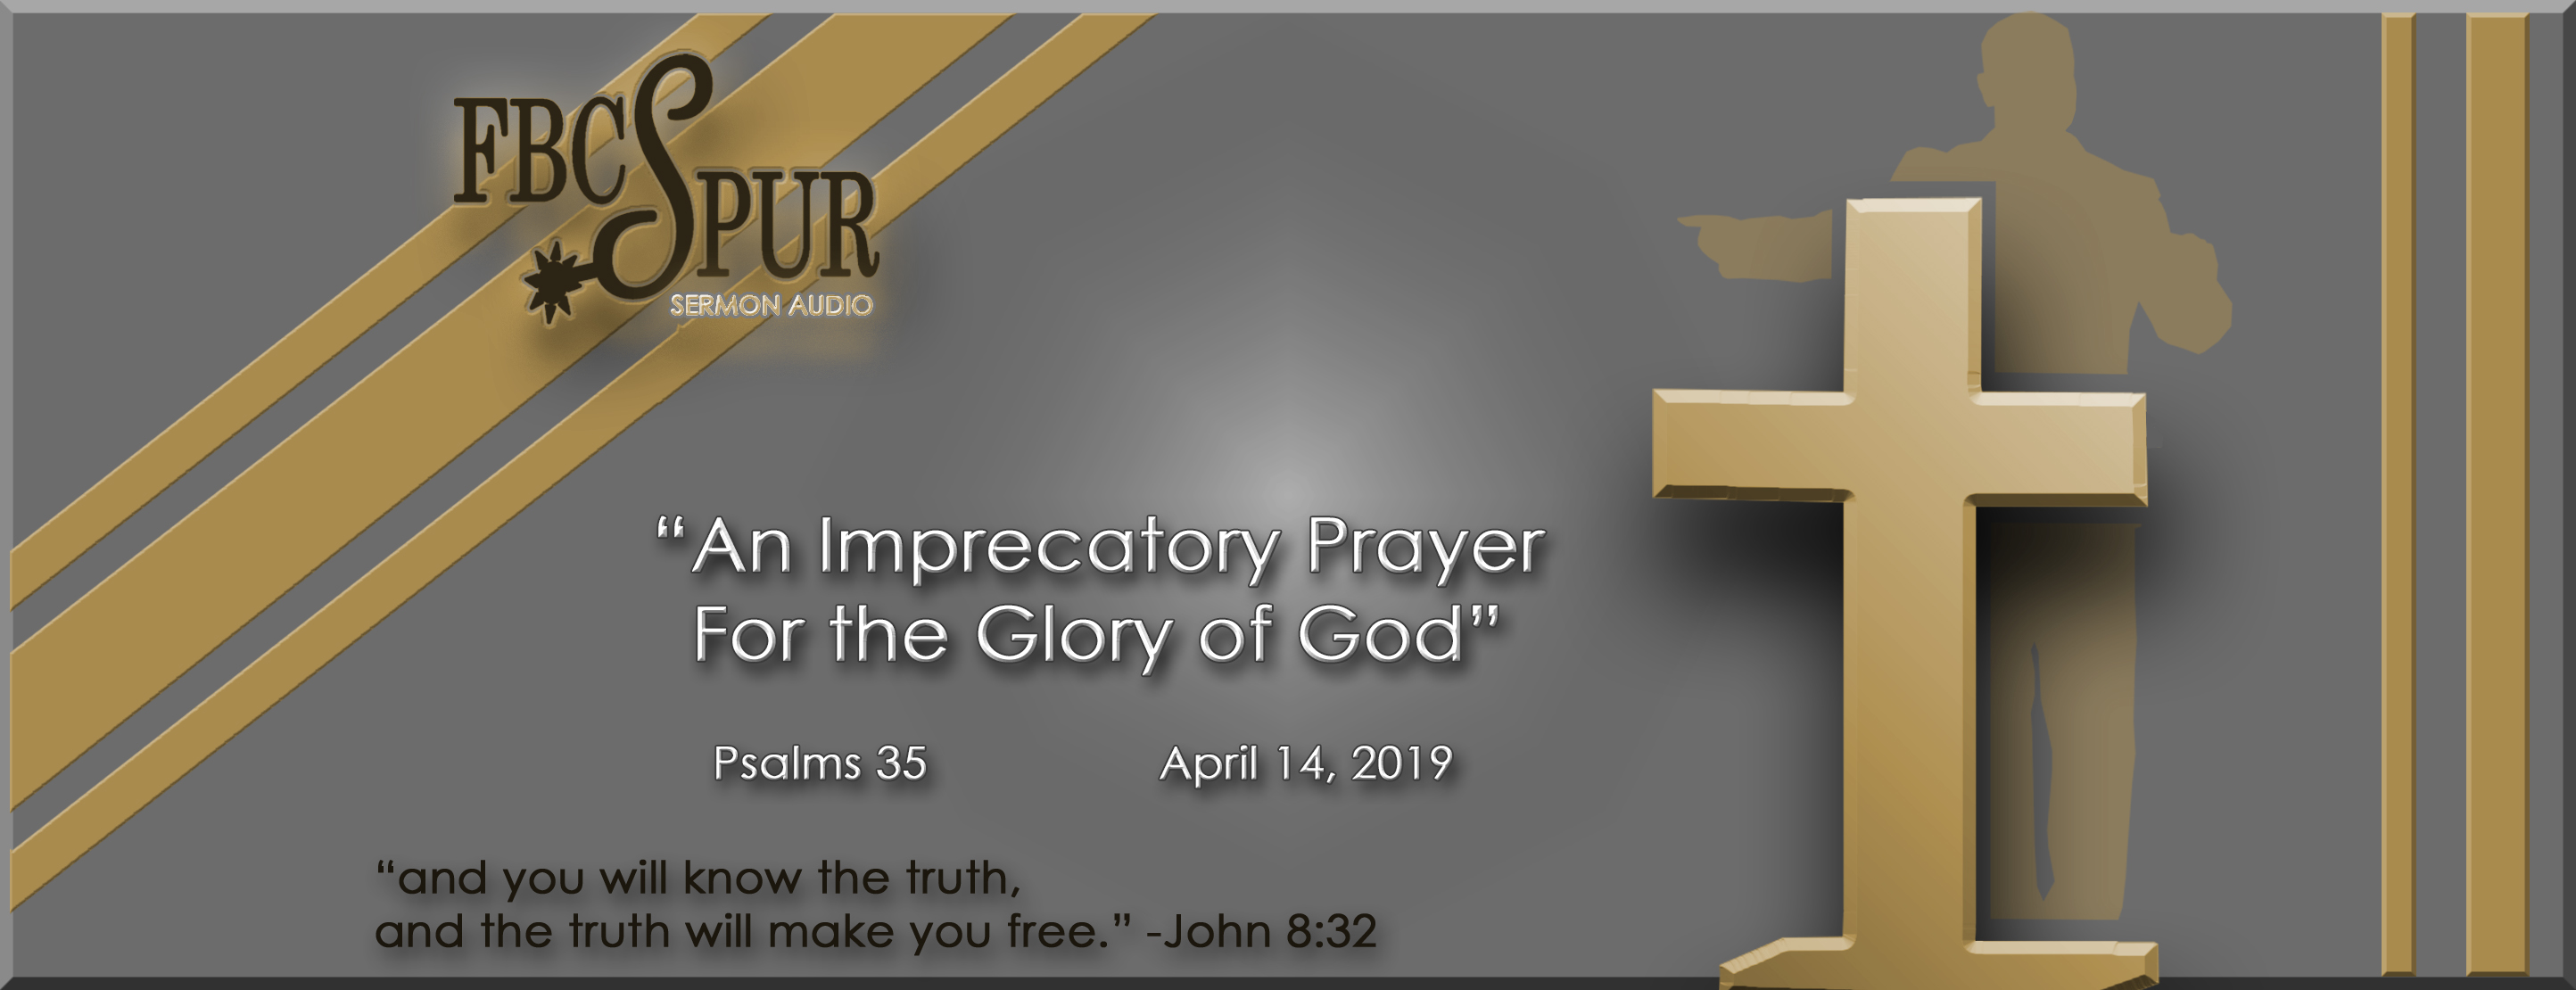 An Imprecatory Prayer For The Glory Of God (Psalms 35) - FBC